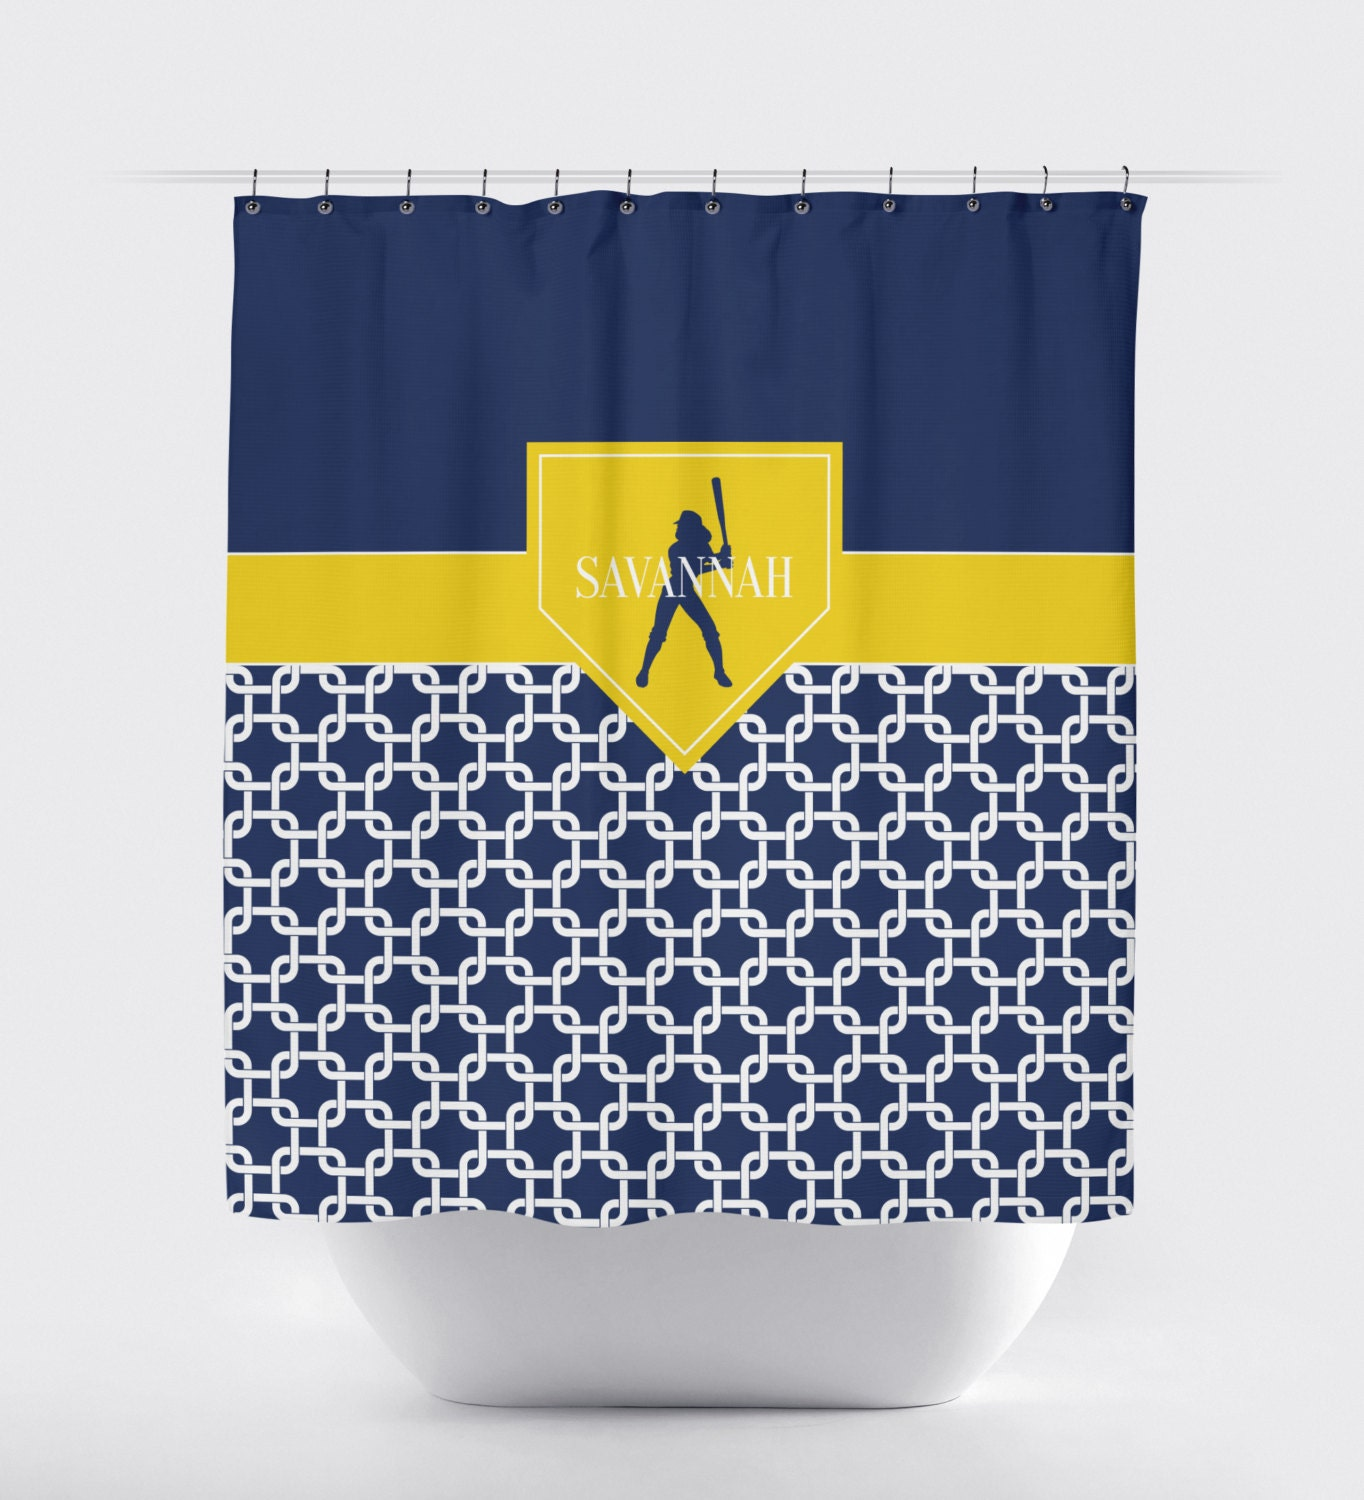 Softball Shower Curtain, Chain Link, Home Plate, Navy Blue, Yellow ...